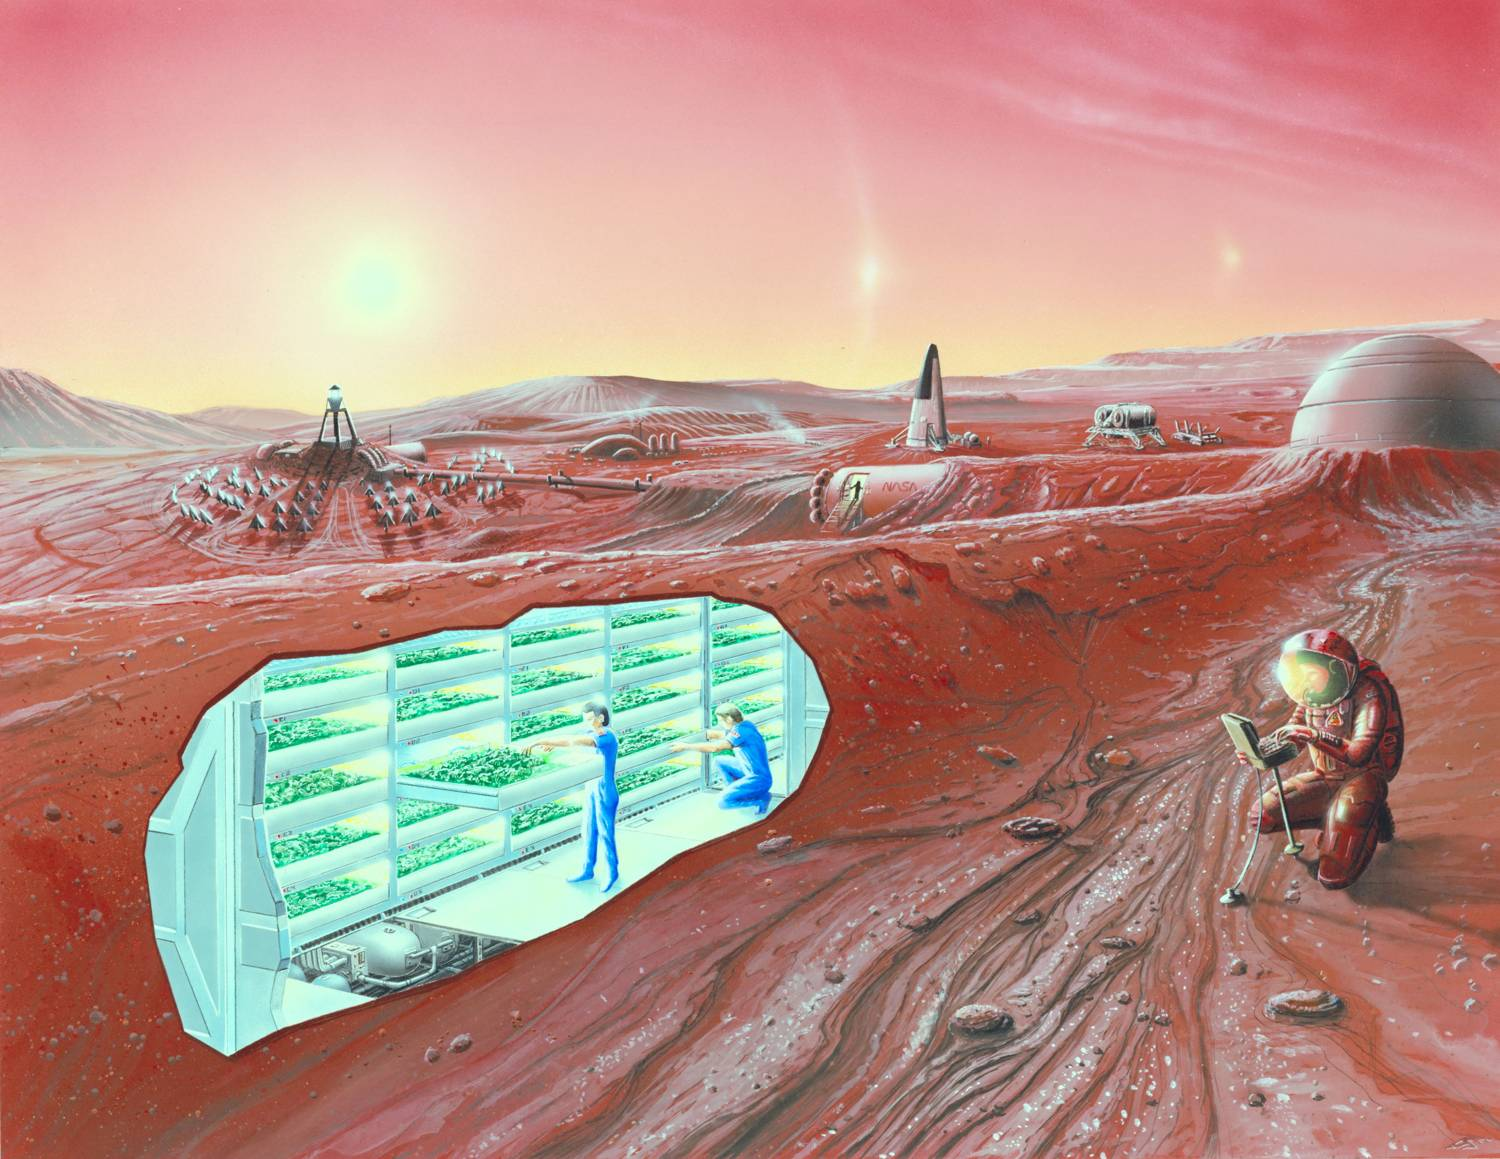 """project red planet mars Mars one chief: privately-funded mission to the red planet will happen bas lansdorp,  the project, he said, will generate its own revenues to fund the next steps """"the plan was to send people to mars by 2025  the unique part of the mars one mission is to establish a permanent human settlement on the red planet """"going to mars takes about seven months,"""" said the mission's coo """"the technical aspect of the mission is extremely complex."""